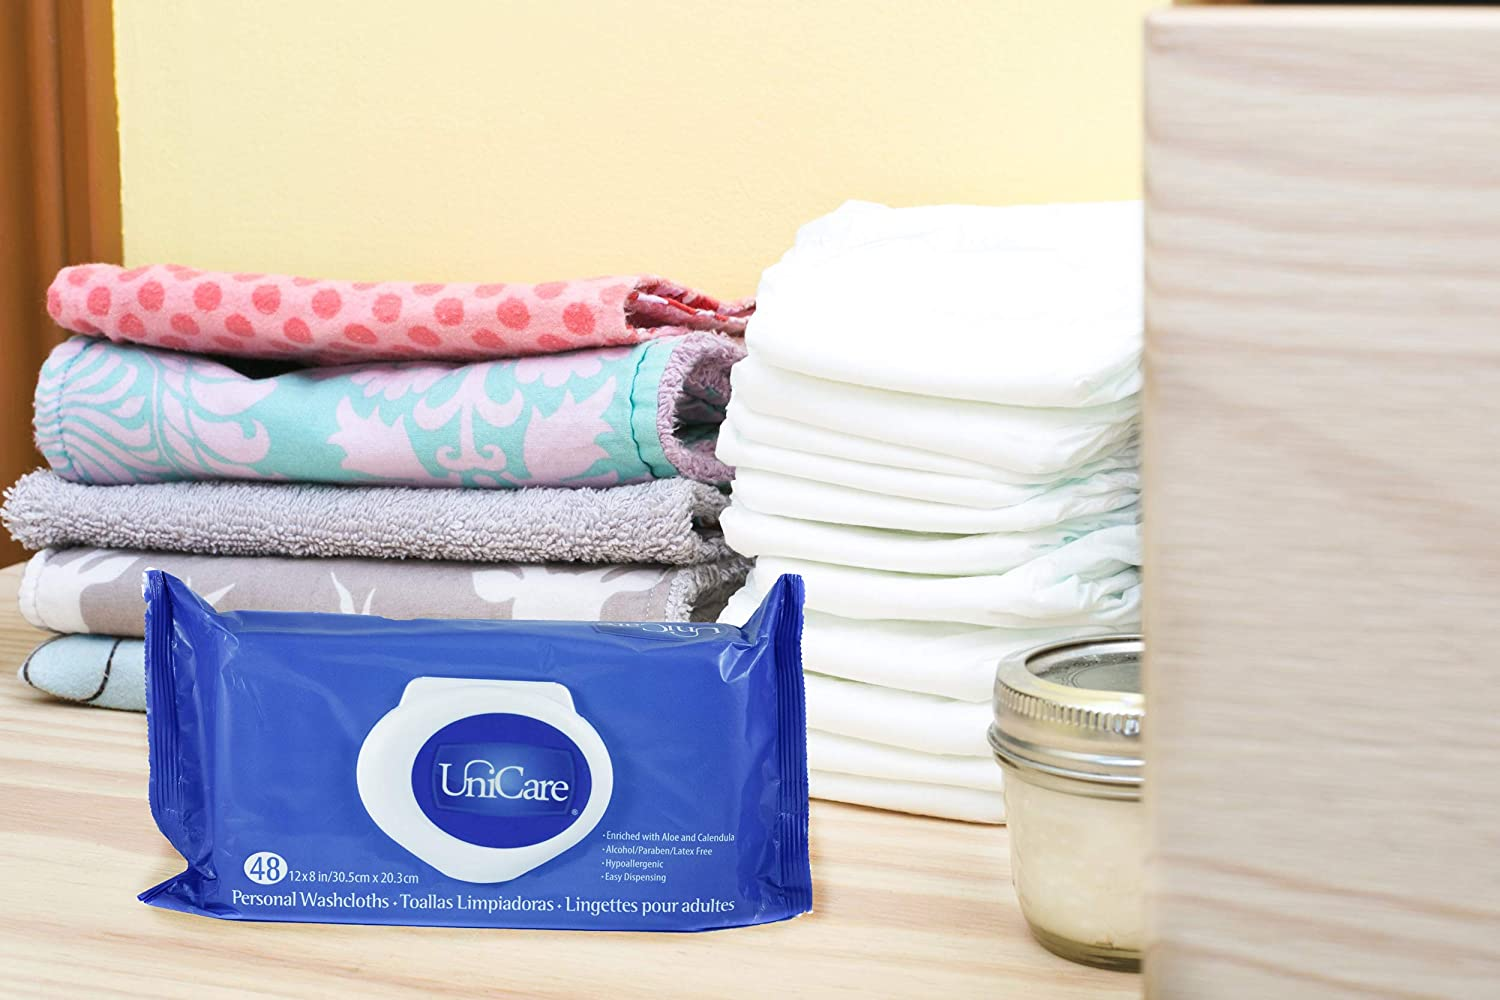 Amazon.com: Unicare Personal Washcloths. 96 Premium Quality Adult Wipes 12 x 8. Hypoallergenic Disposable Wascloths. Moist Cleansing Wipe Washclothes.